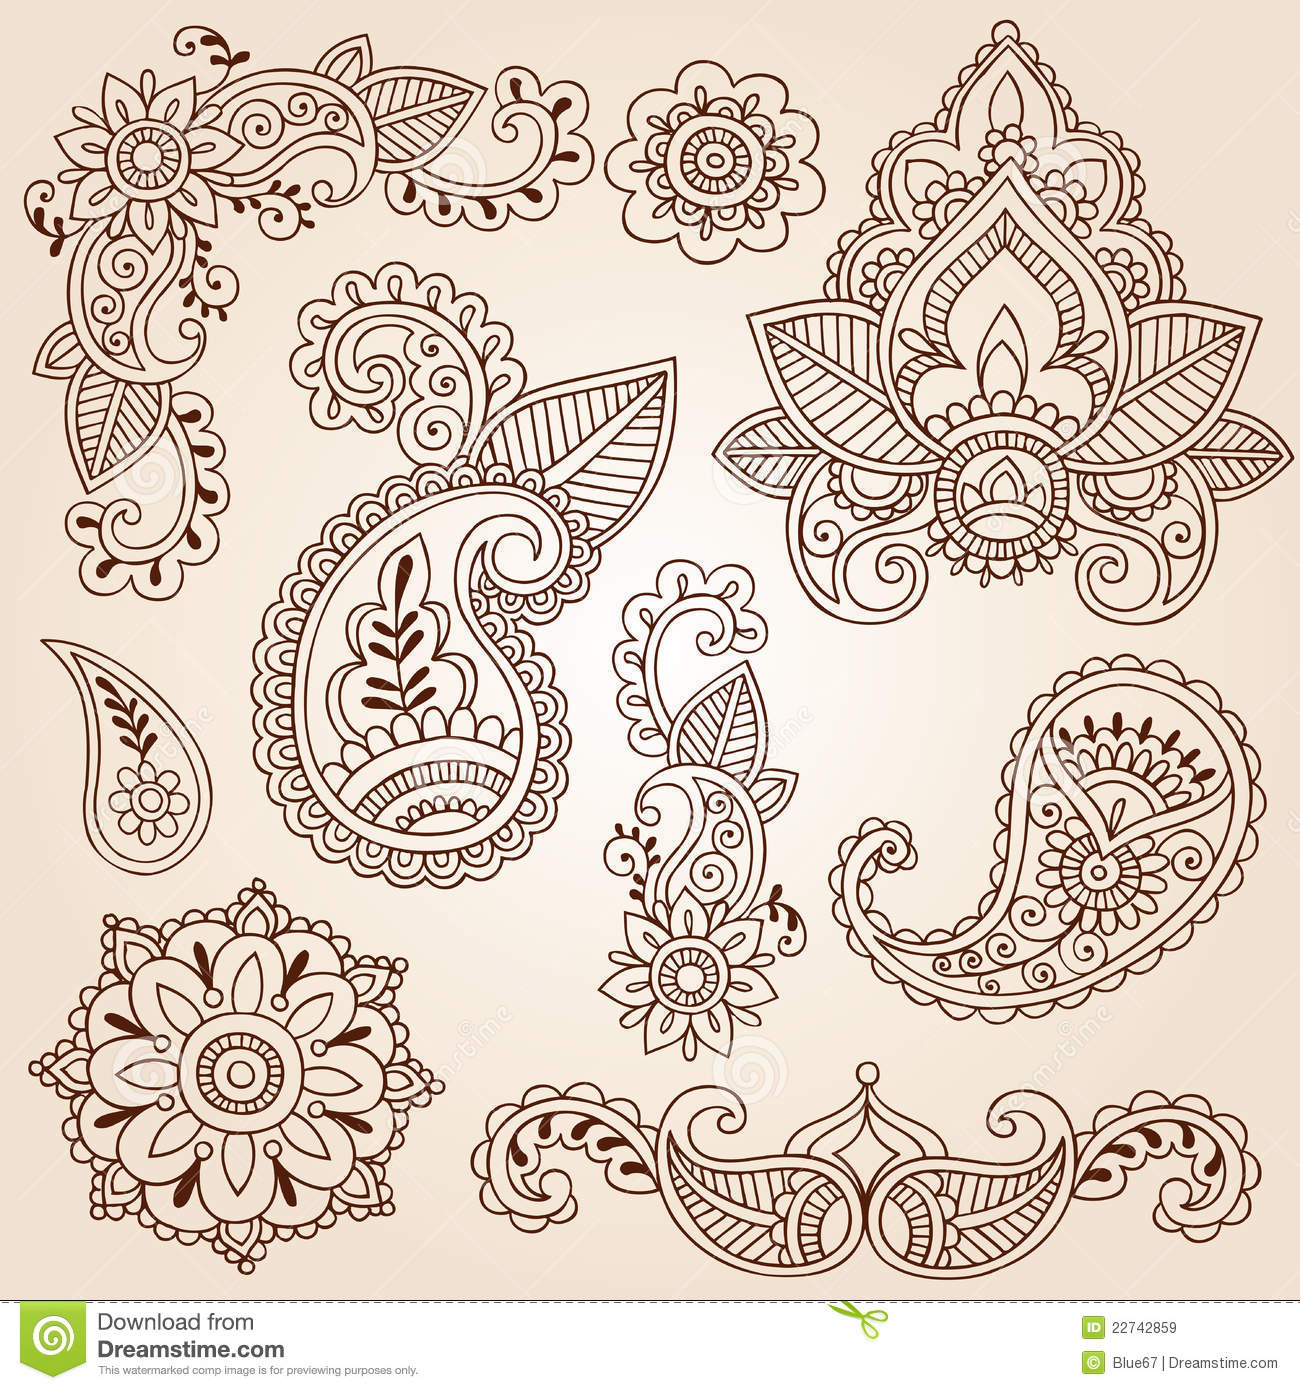 Henna Doodles Mehndi Tattoo Design Elements Set Stock Vector